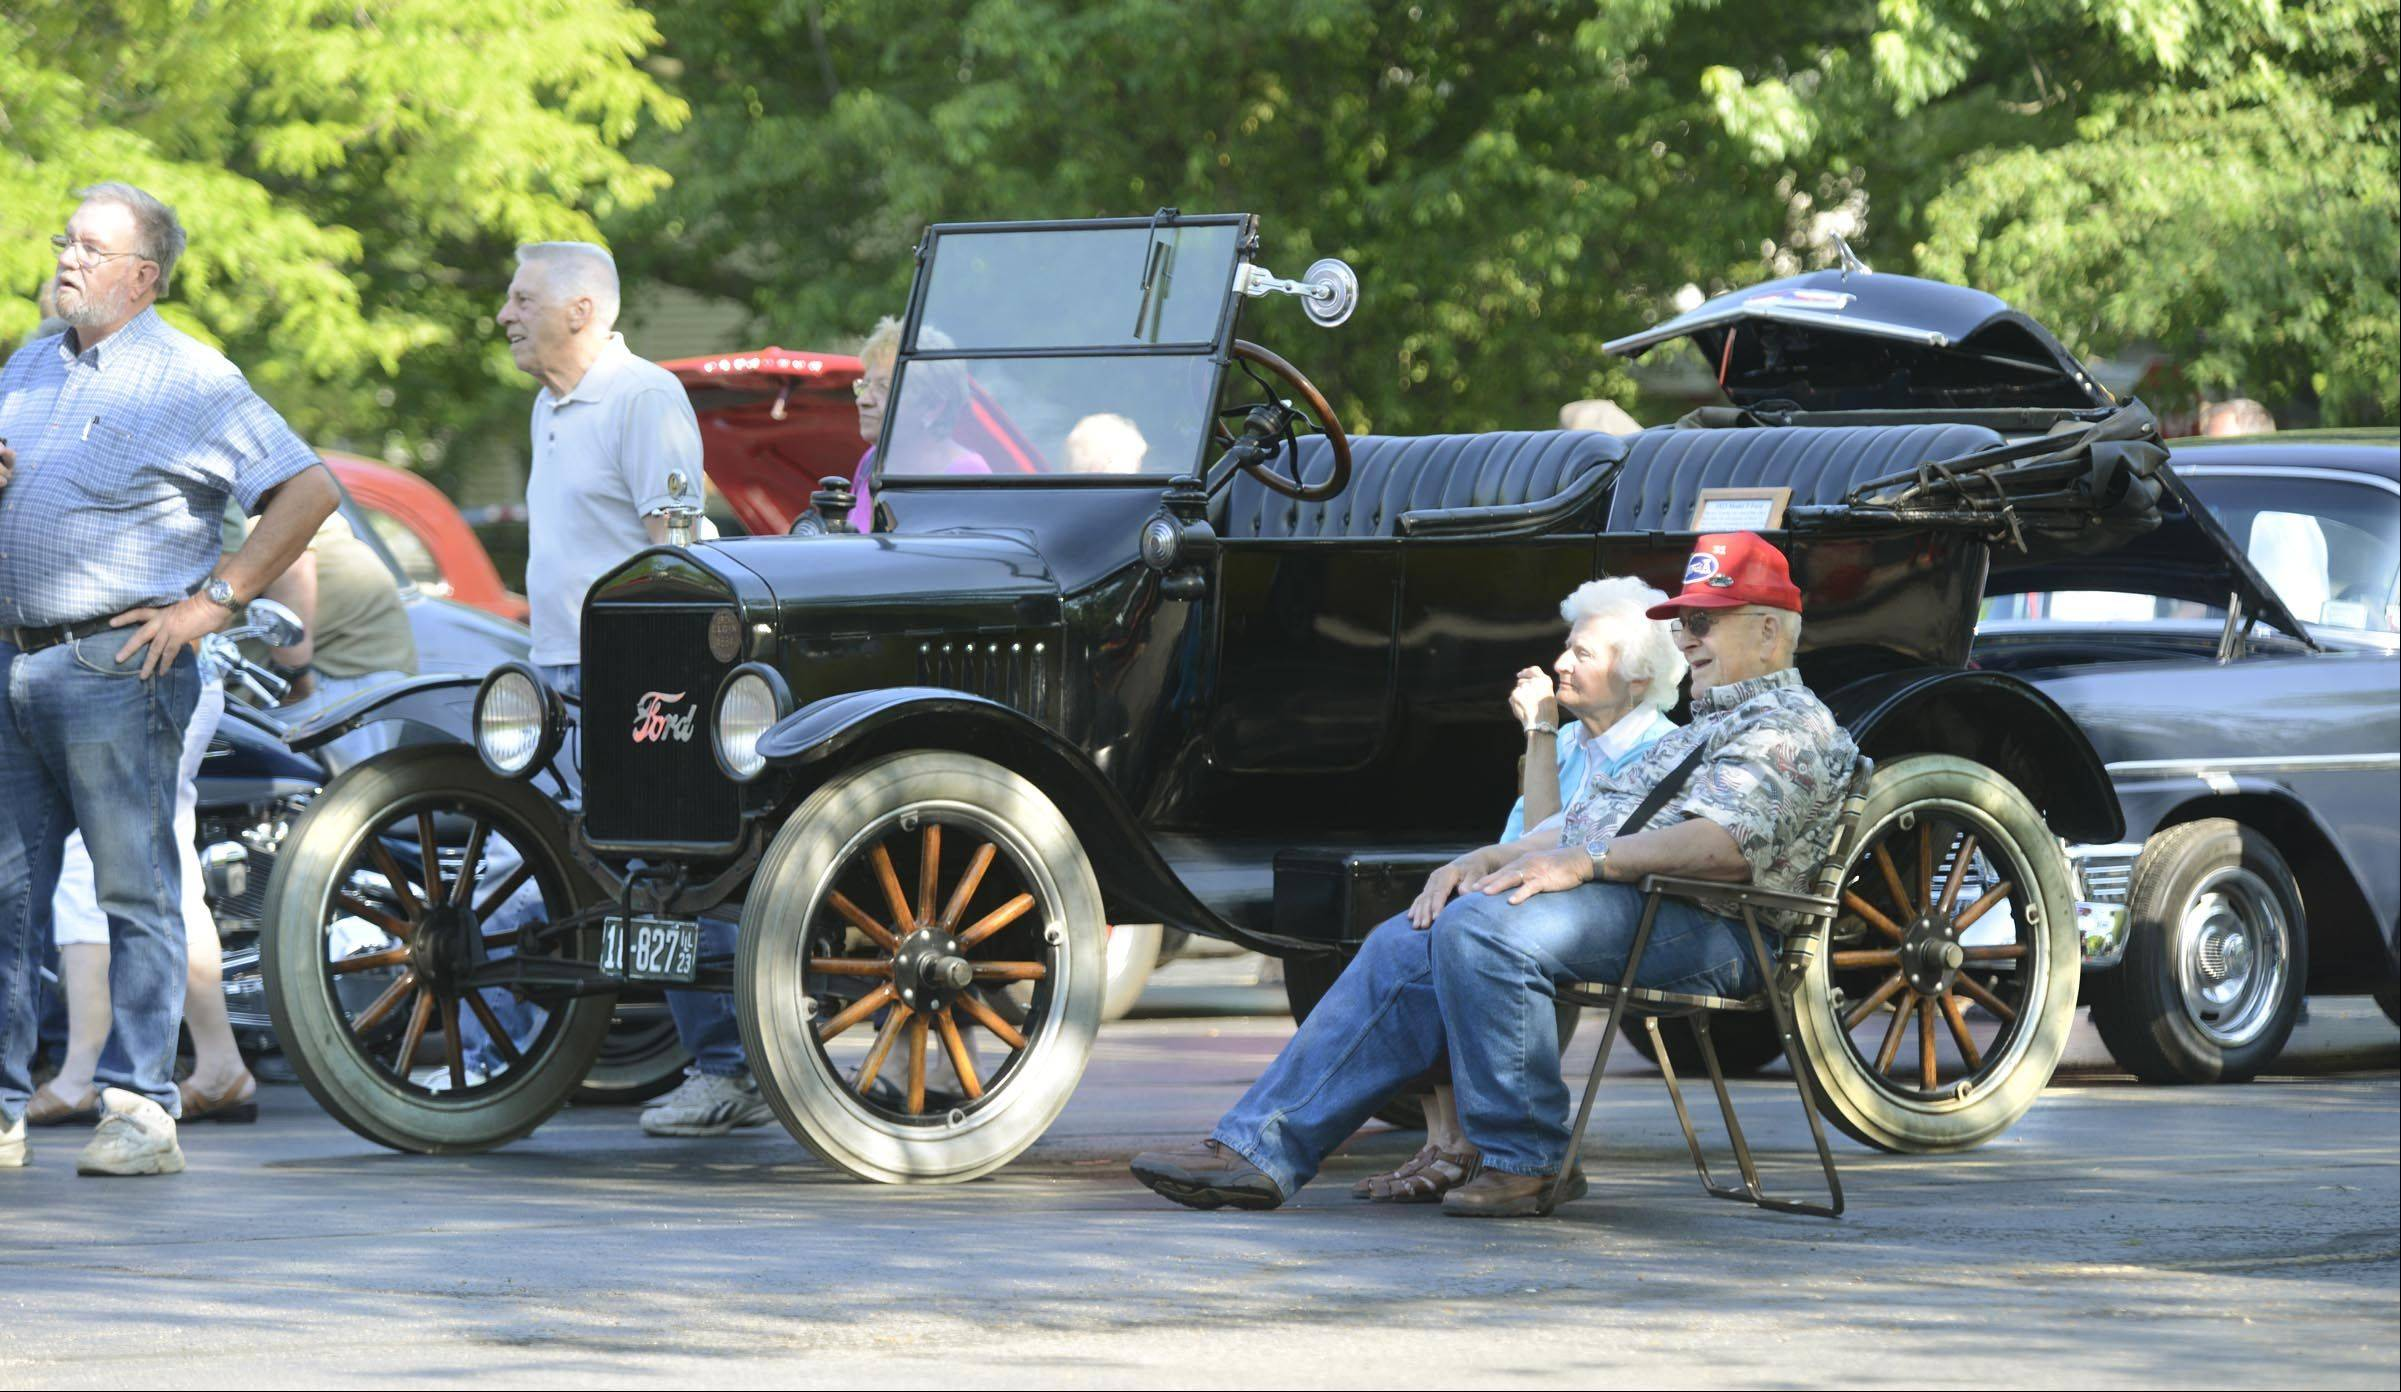 Whitey and Arlene Reiser, of Hampshire, sit in their lawn chairs in a shady part of the parking lot near a 1923 Ford Model T Roadster Wednesday evening at the third annual Elgin American Legion Post 57 car show. The Reiser's own a 1931 Ford Model A pickup truck that was on display at the show.